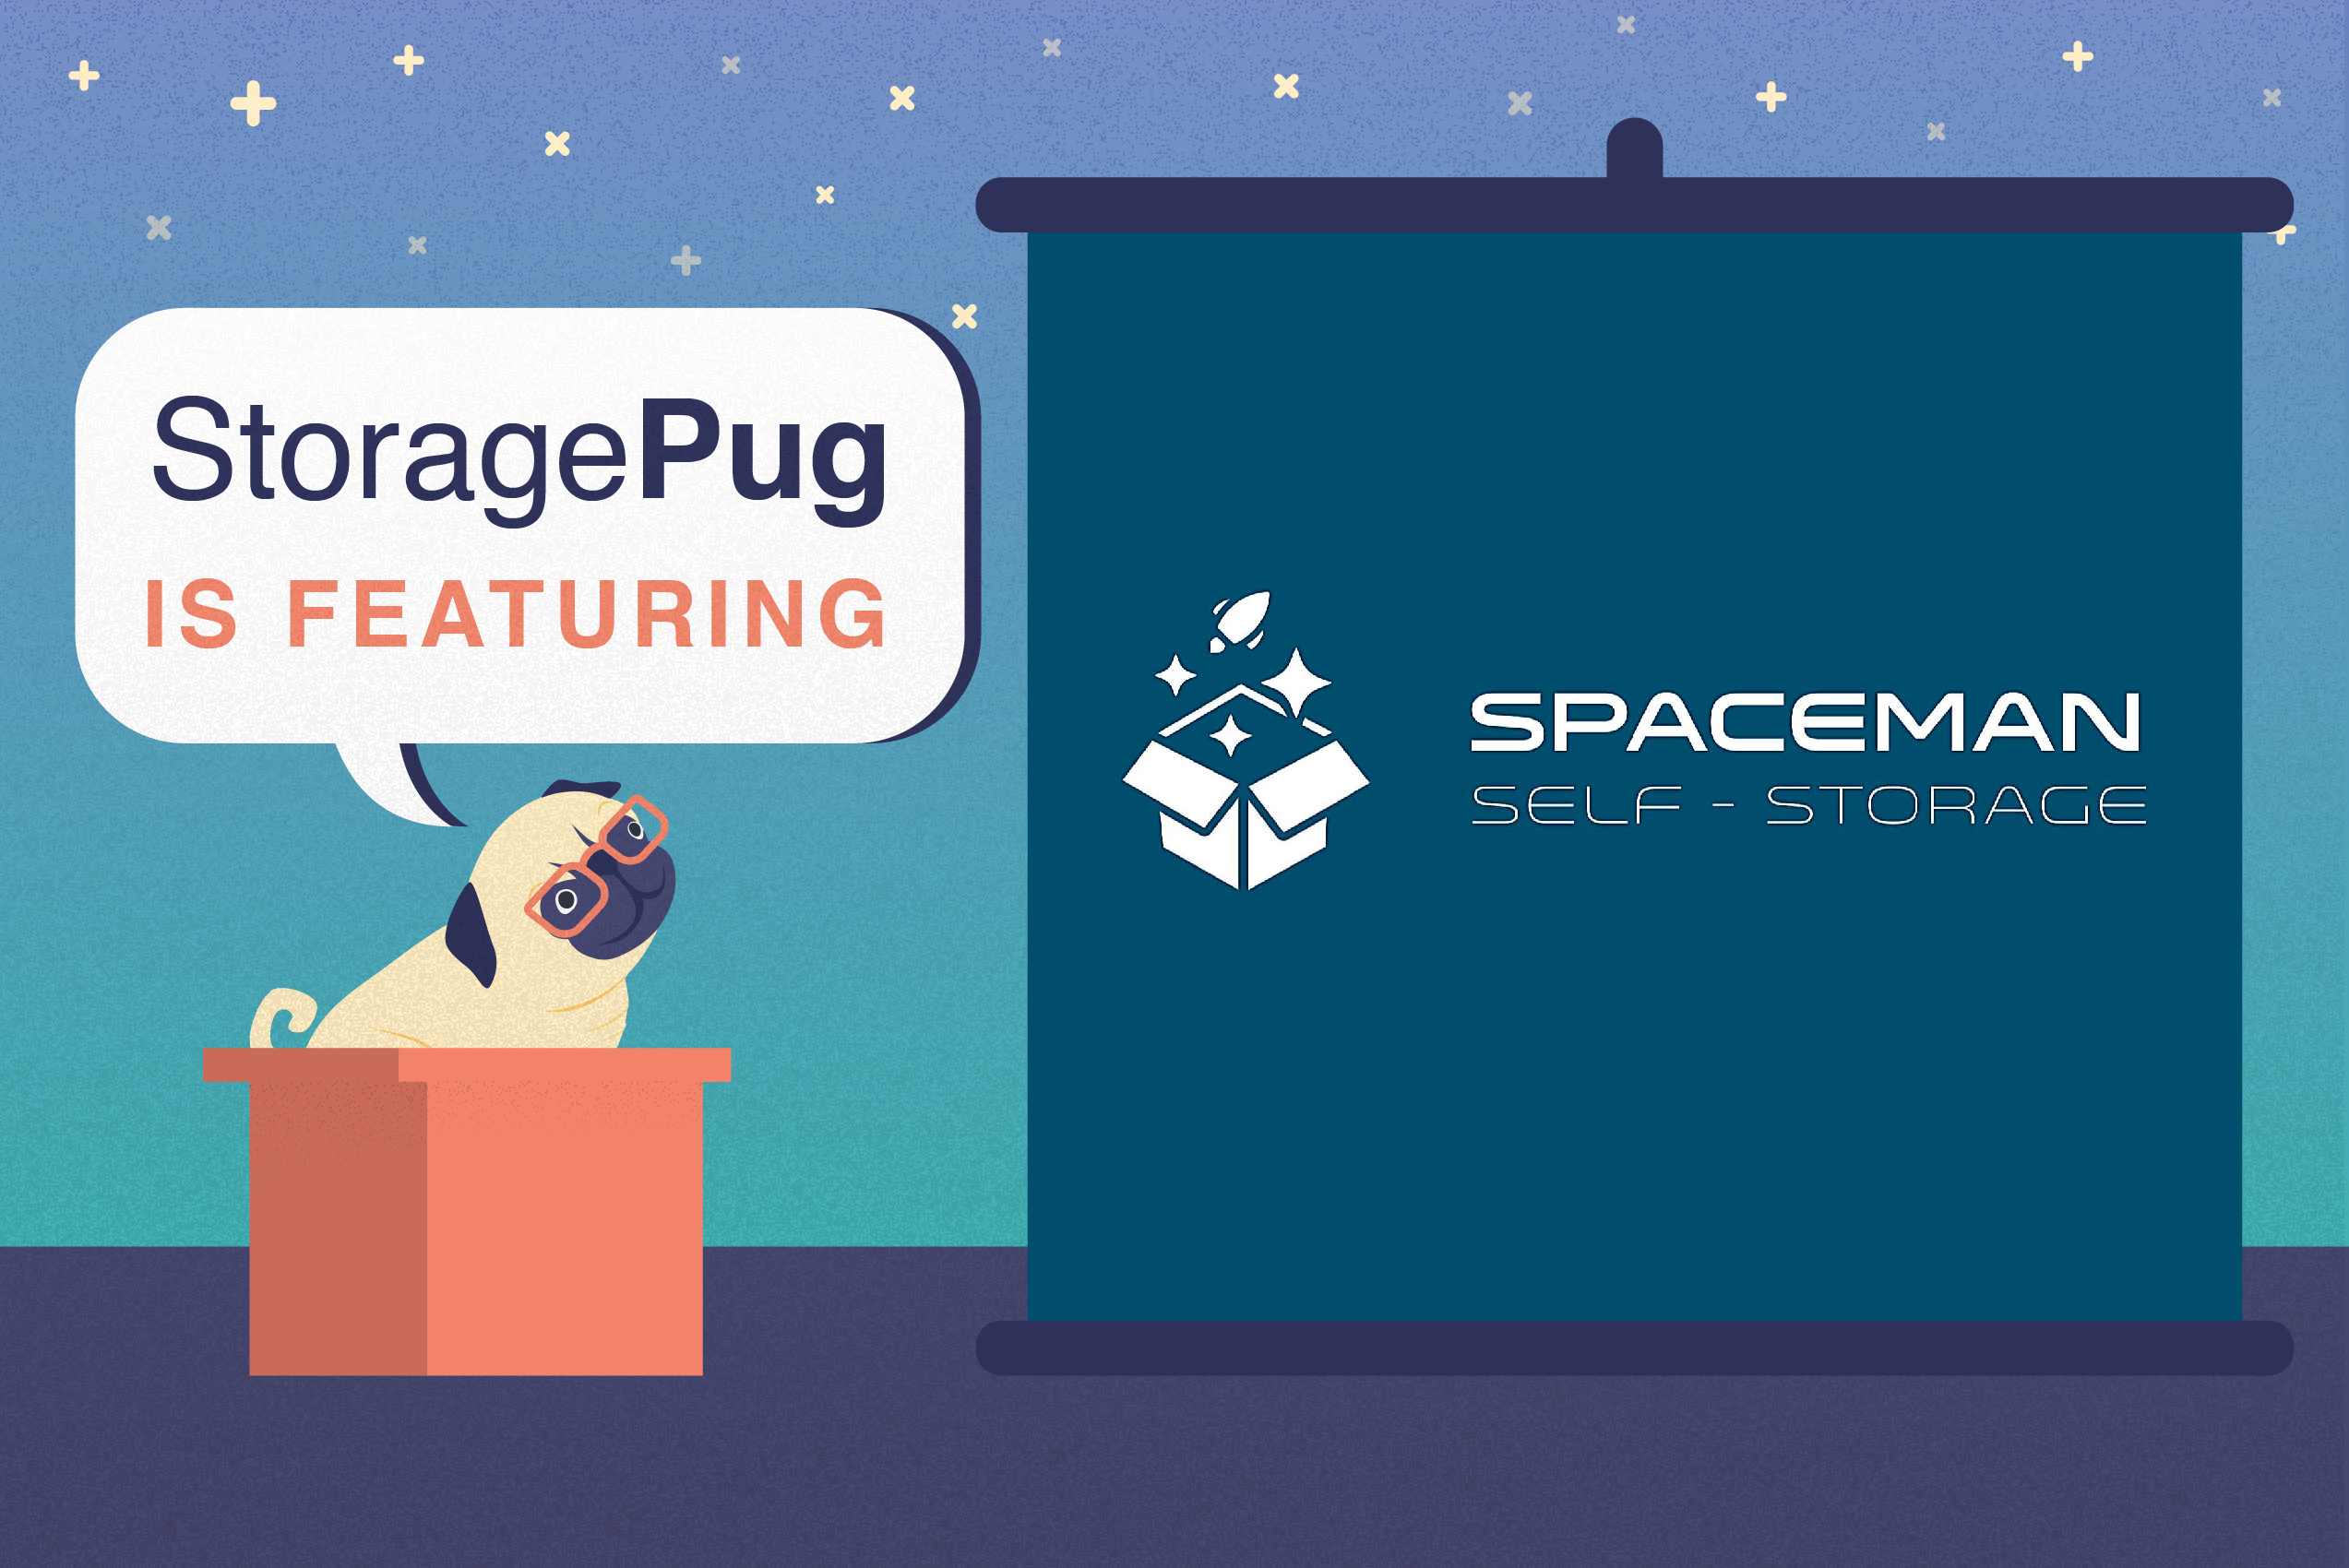 StoragePug-client-feature-space-self-storage